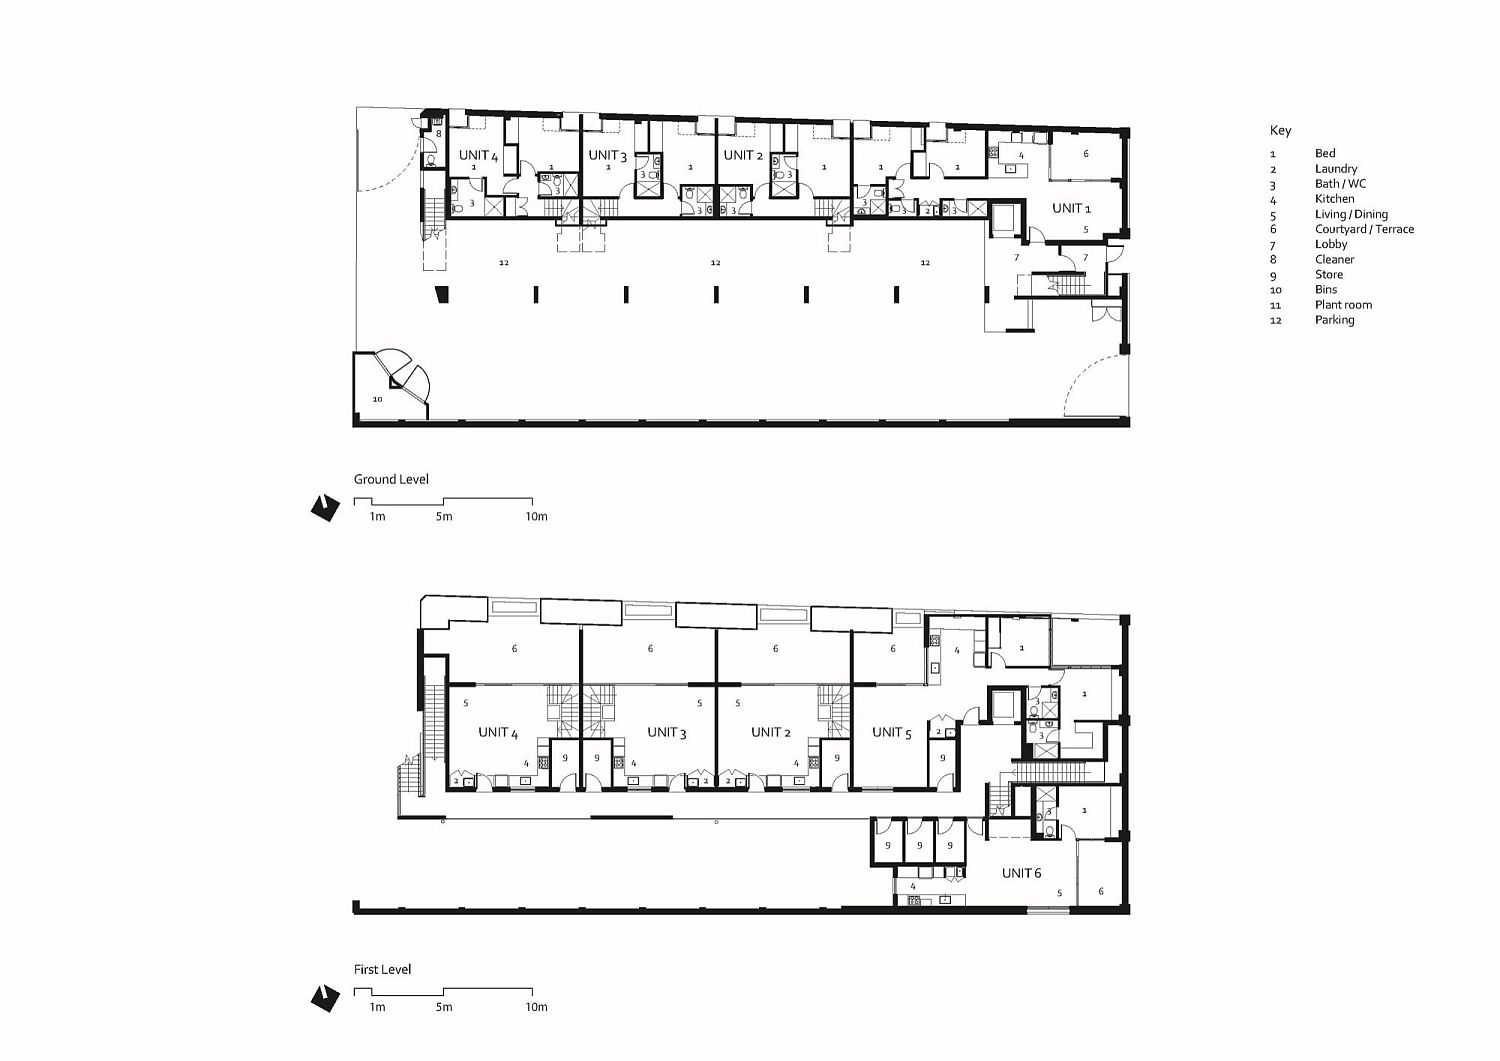 First level and second level floor plan of the building